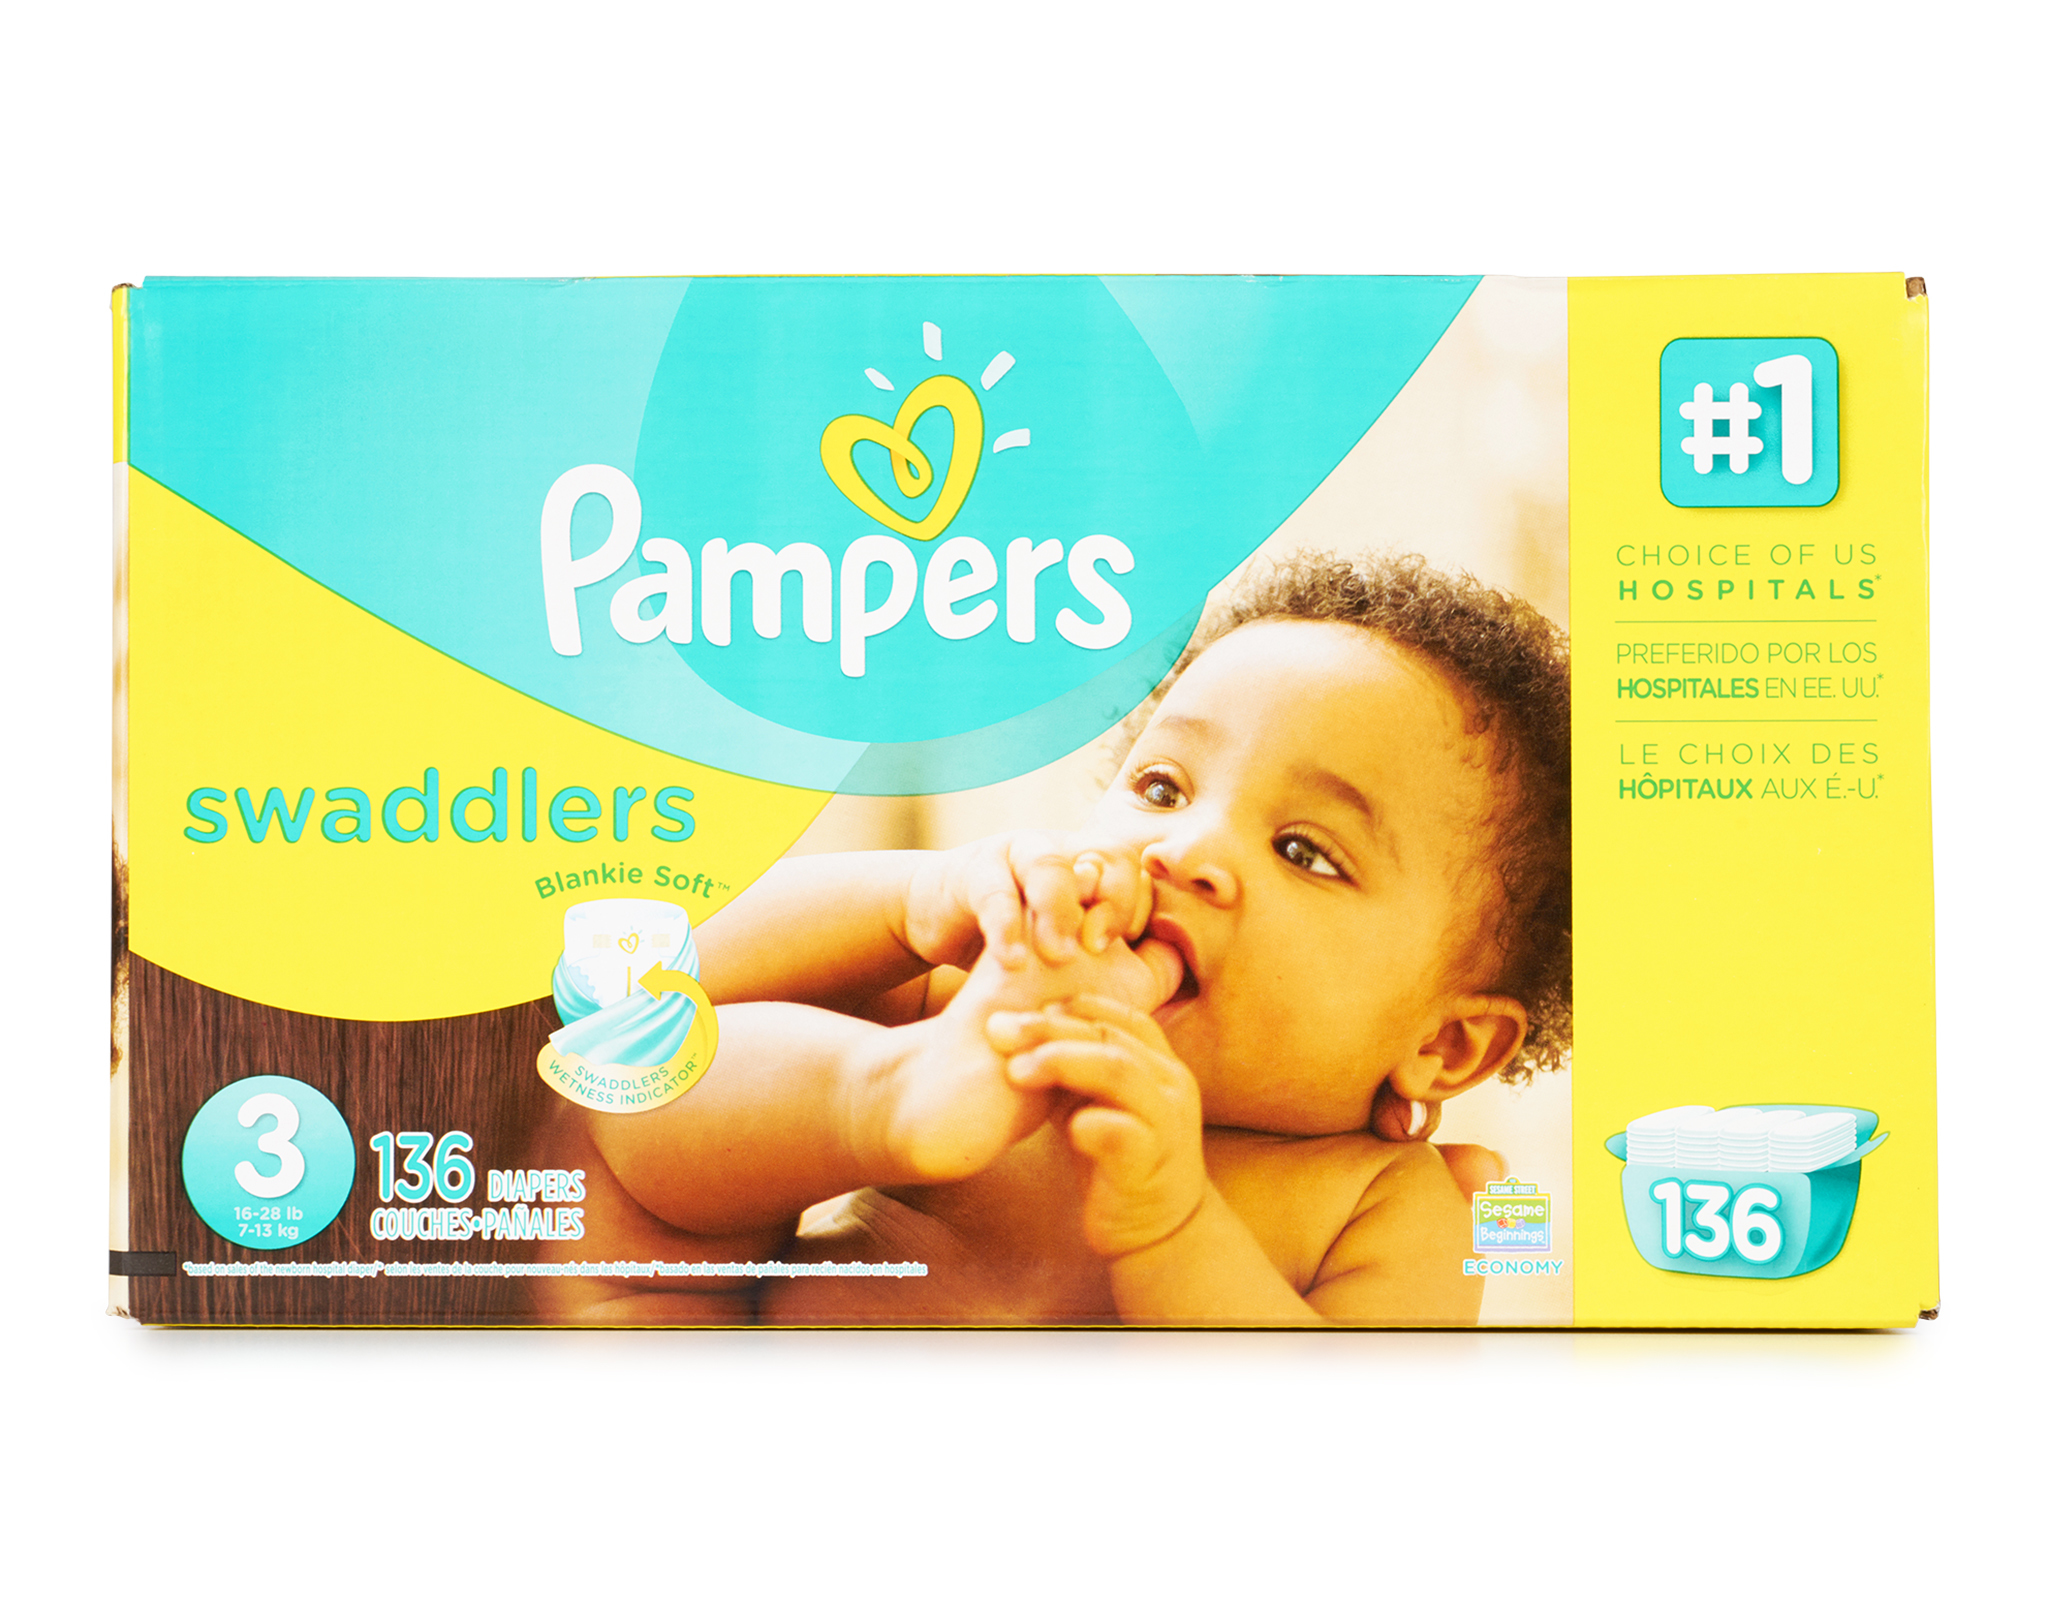 Garage Pampers Swaddlers Diapers Size Boxed Pampers Newborn Diapers Sensitive Pampers Newborn Diapers Coupons baby Pampers Newborn Diapers